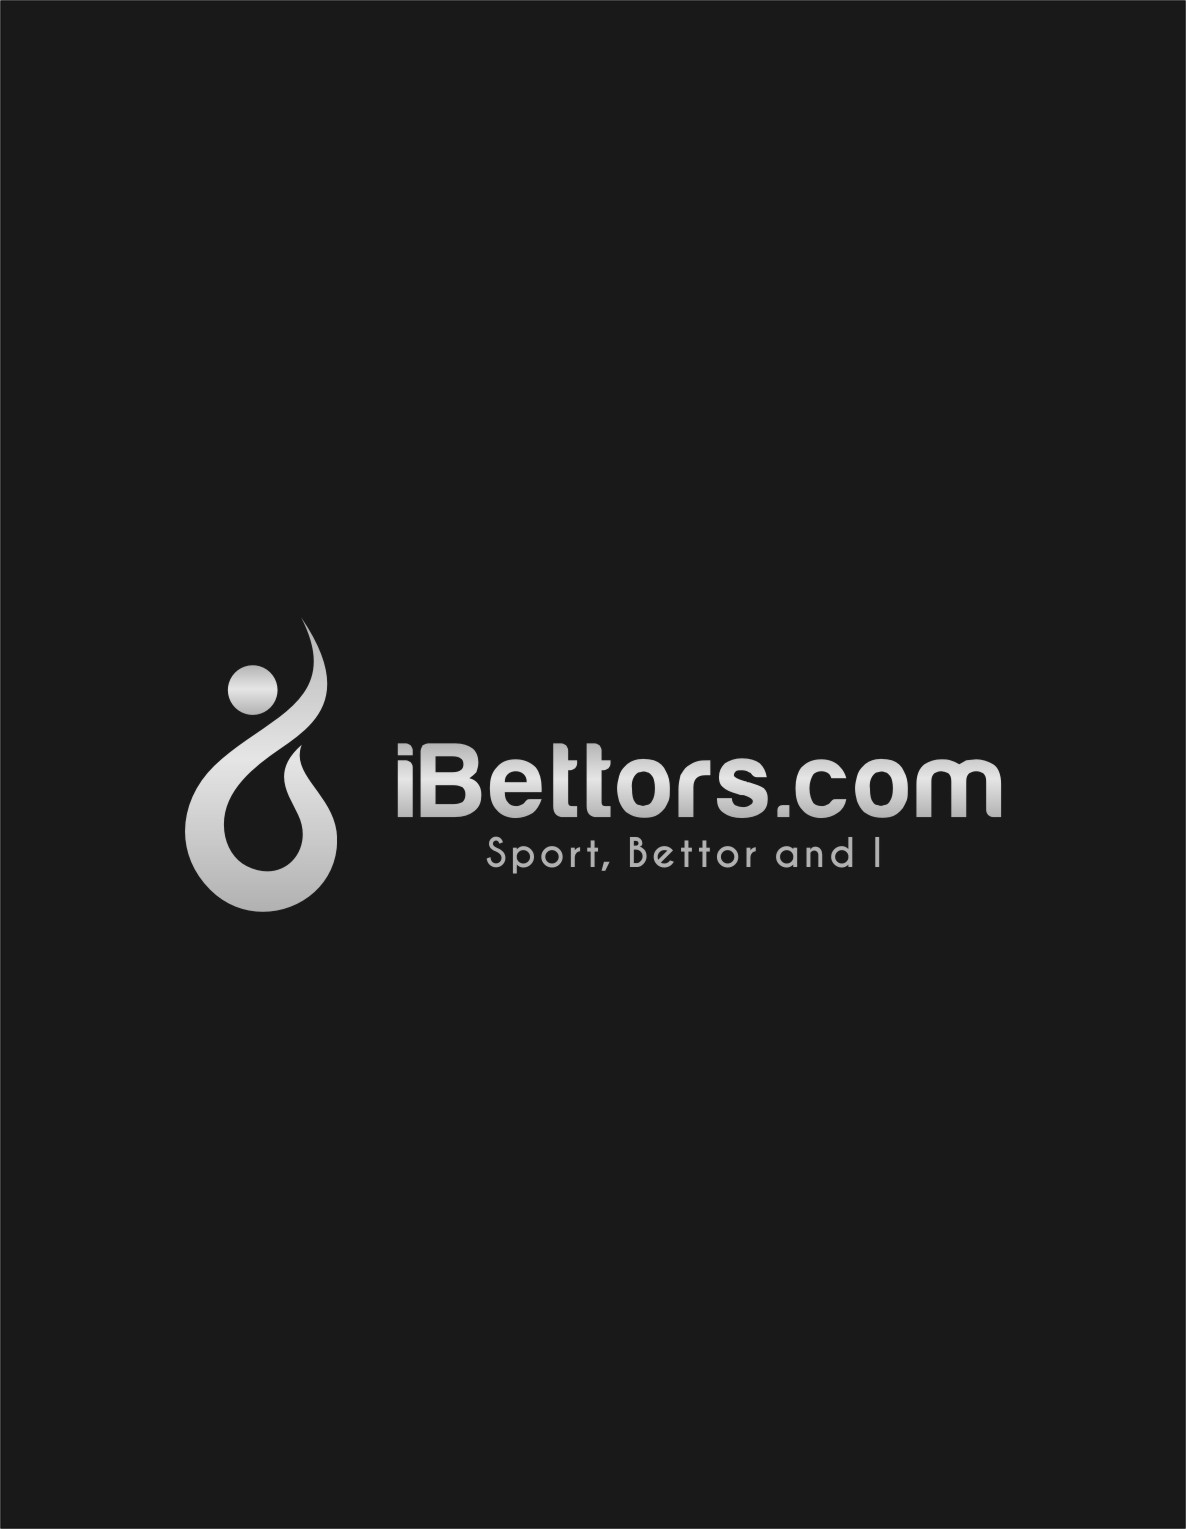 Logo Design by RasYa Muhammad Athaya - Entry No. 115 in the Logo Design Contest Captivating Logo Design for iBettors.com.